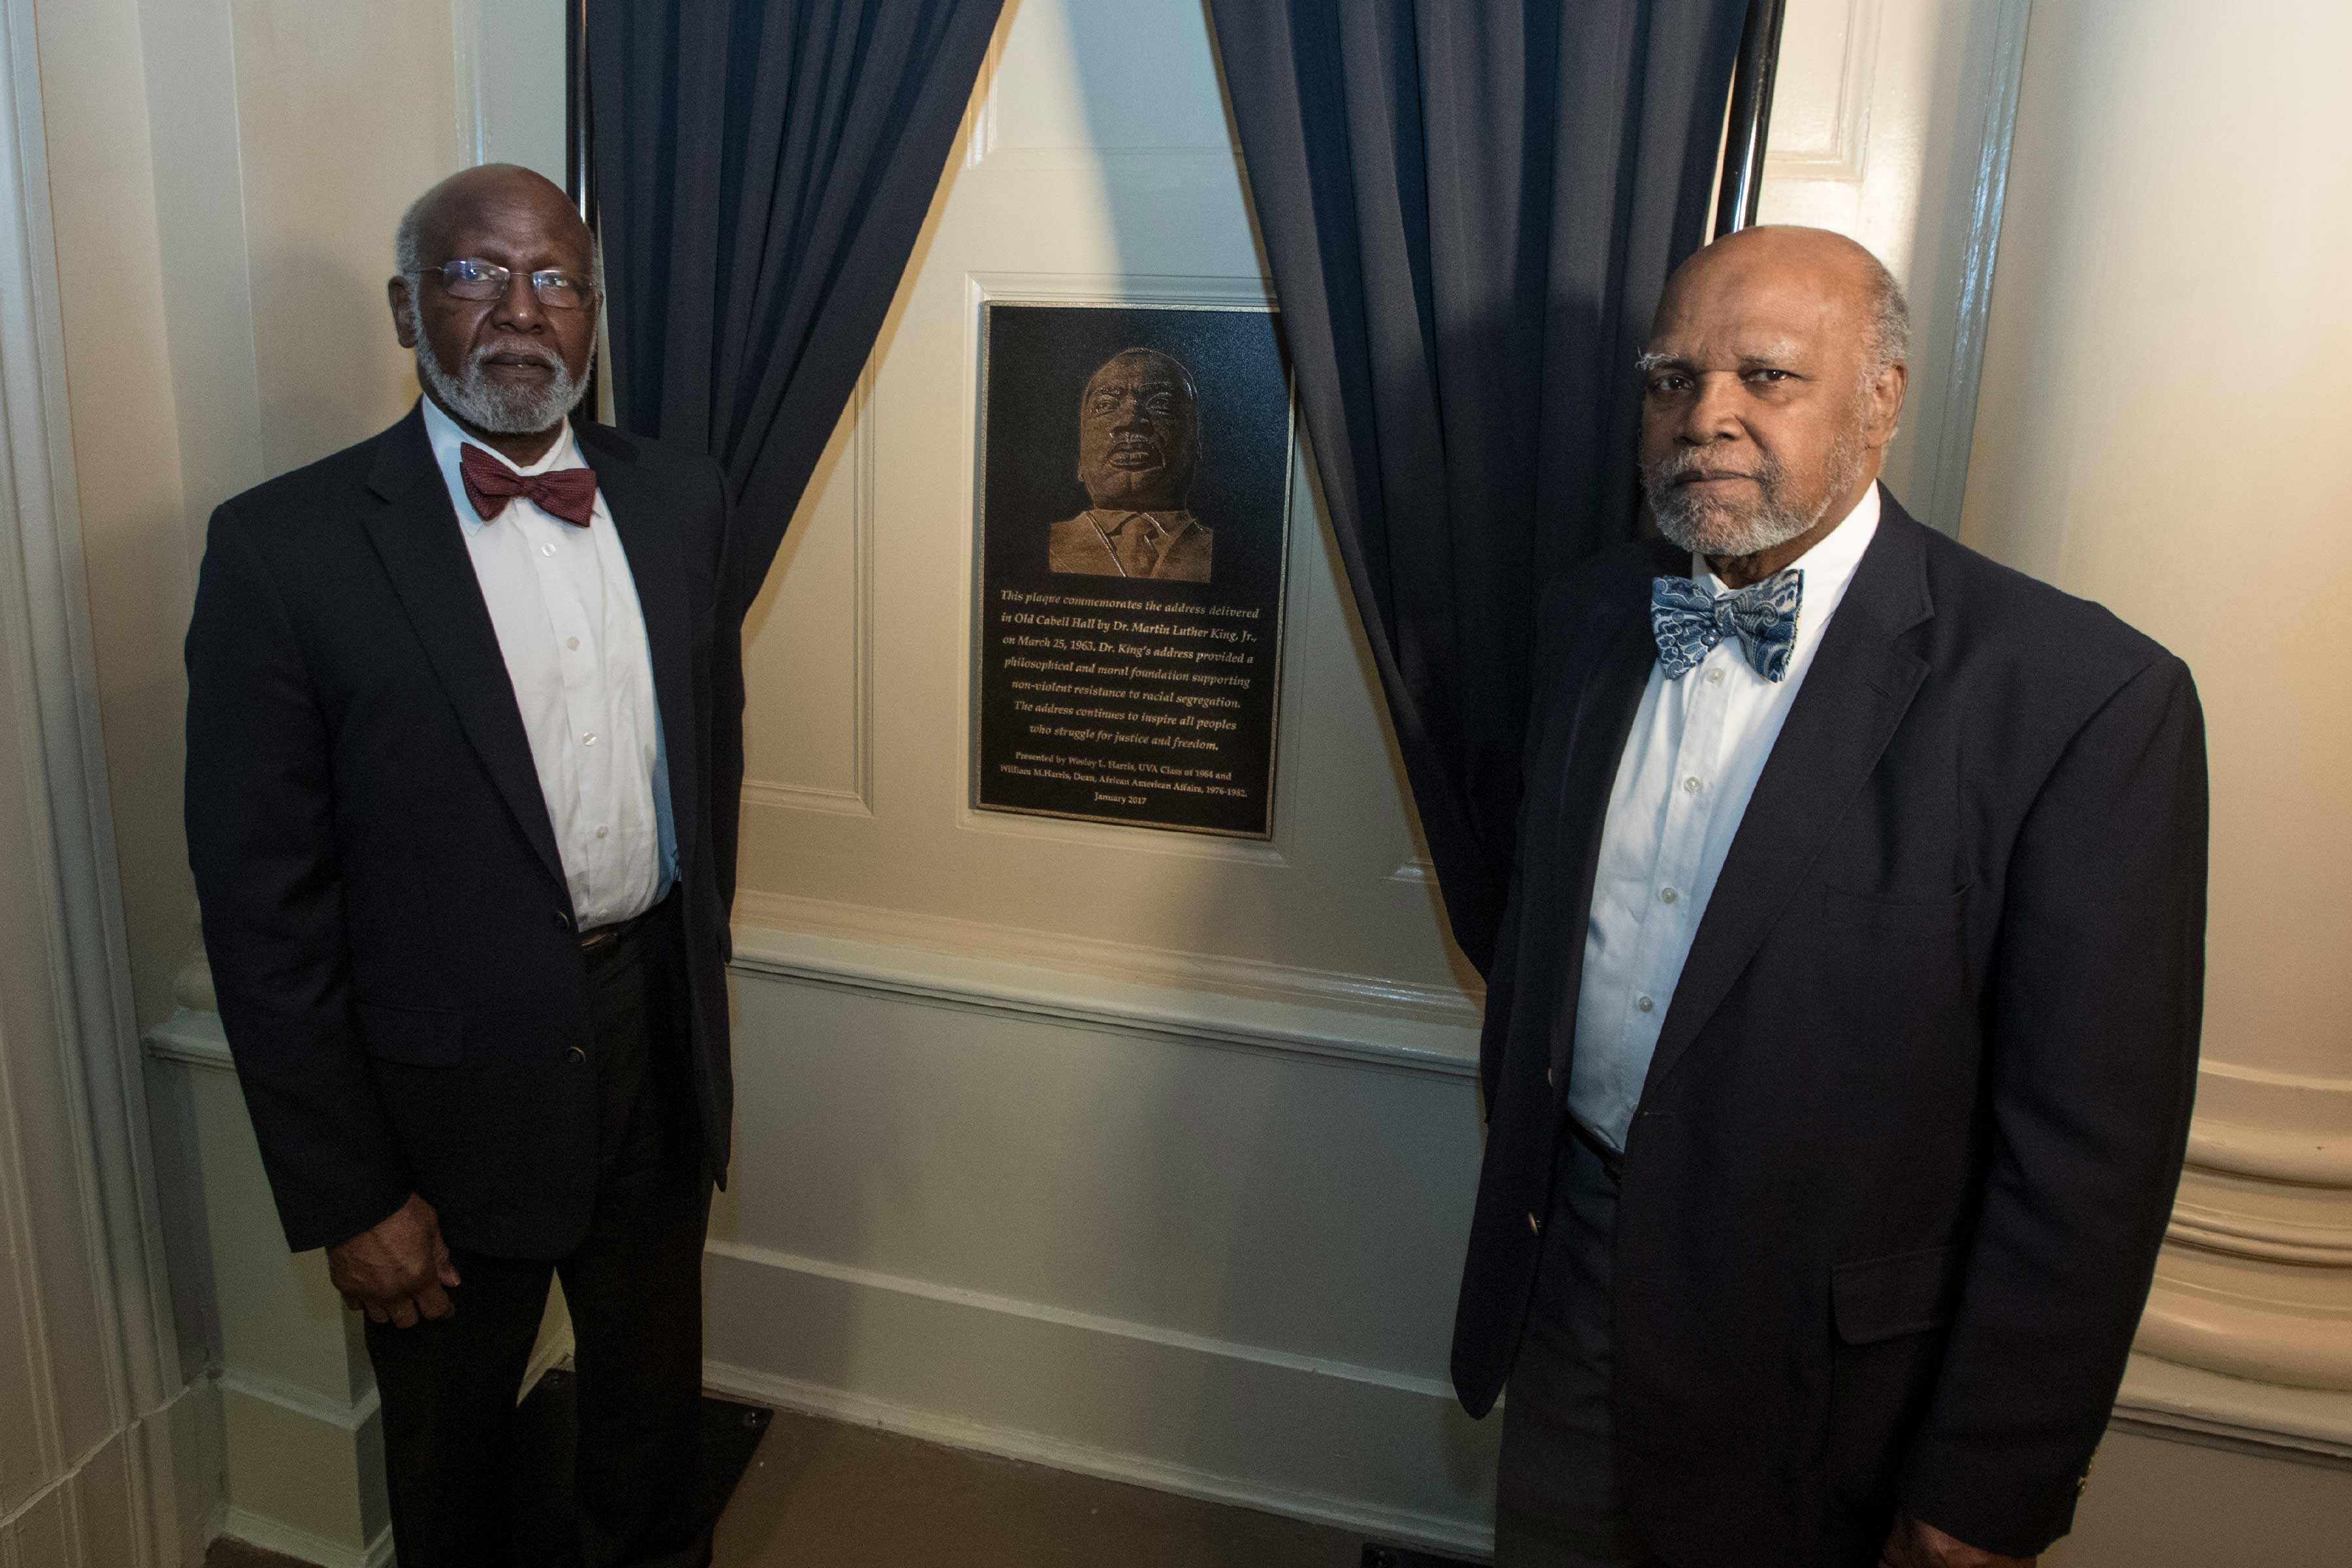 Siblings Wesley and William Harris donated a plaque commemorating King's 1963 speech at UVA. (Photo by Dan Addison, University Communications)